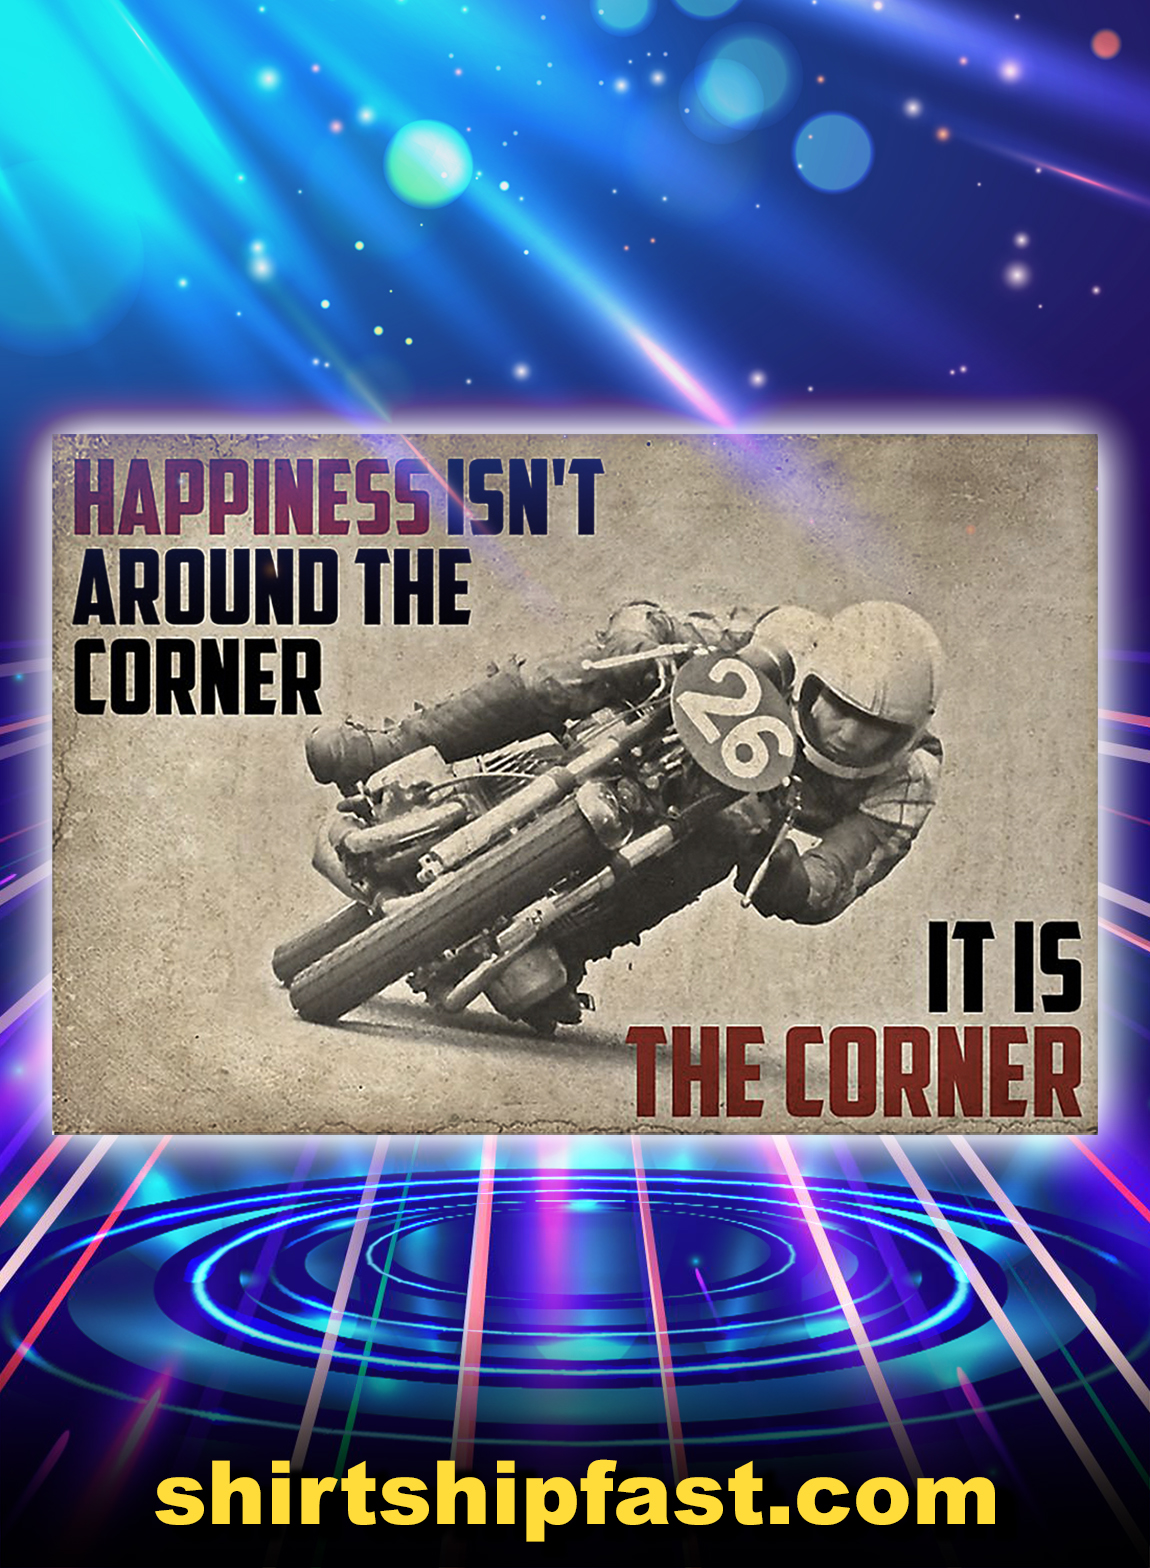 Motorcycle happiness isn't around the corner poster and canvas prints - A3